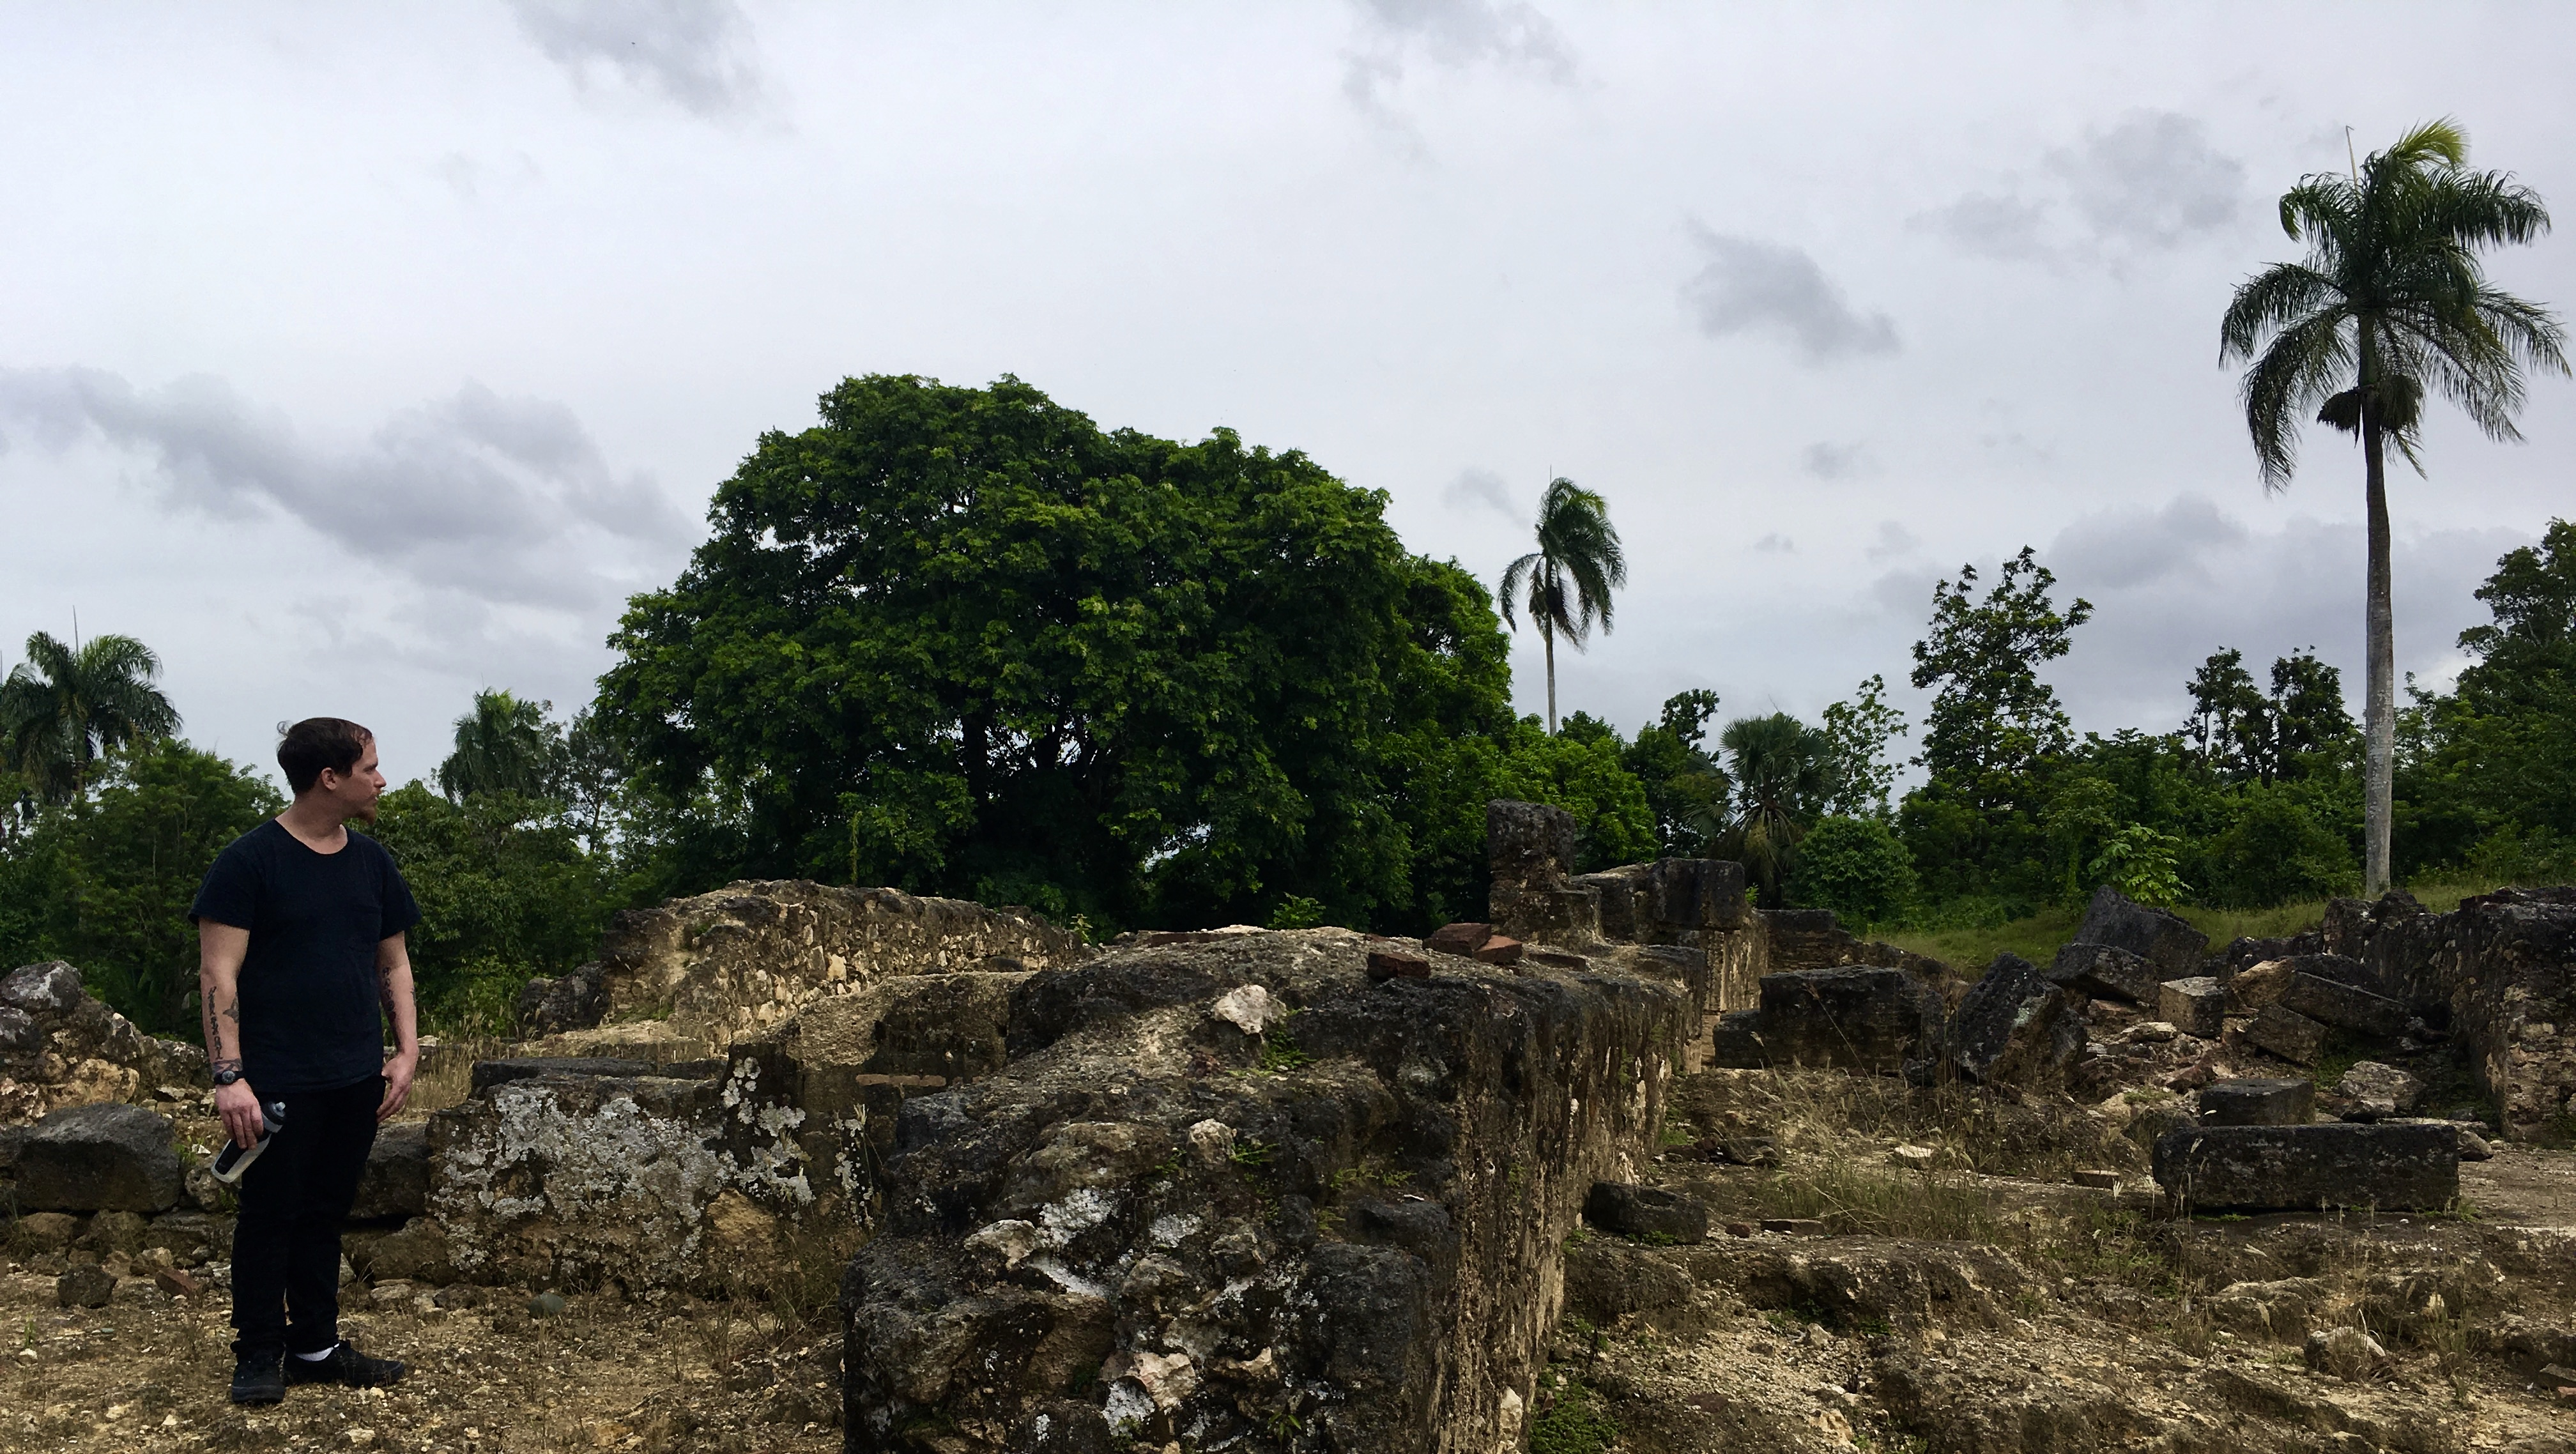 Photo of a student standing next to ruins with trees in the background.